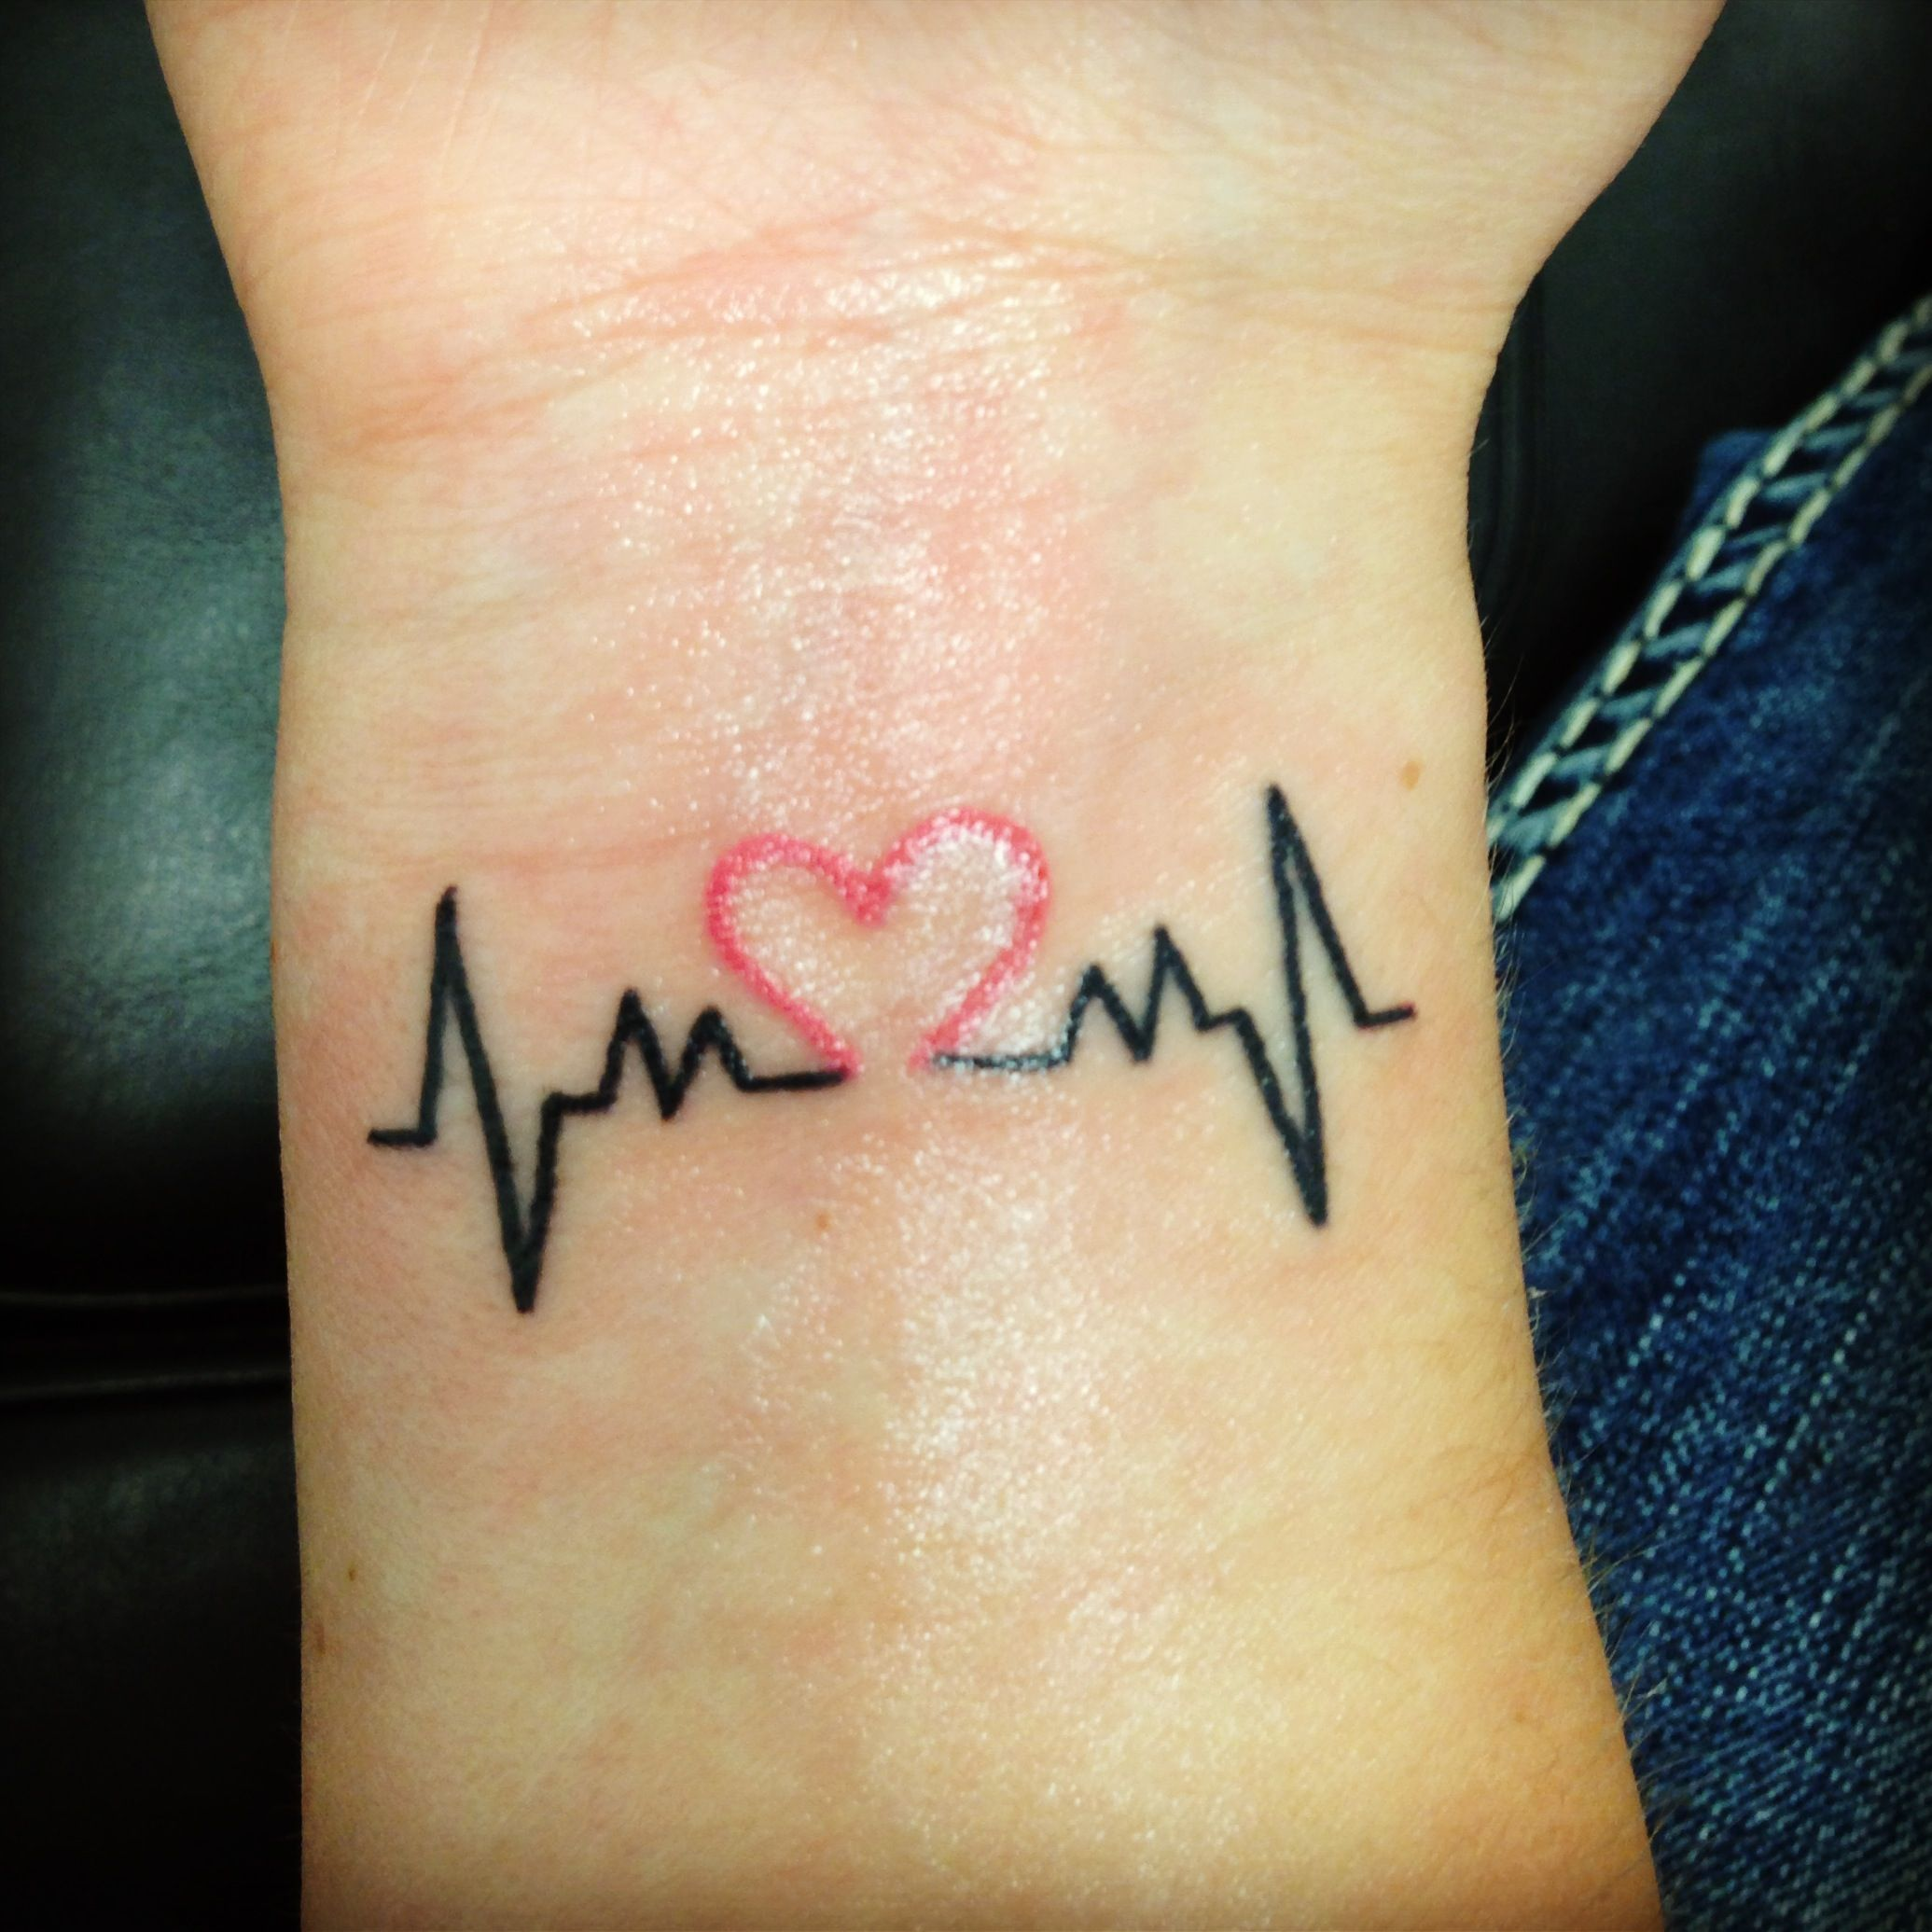 First tattoo with heart beat Tattoo designs wrist, Cute